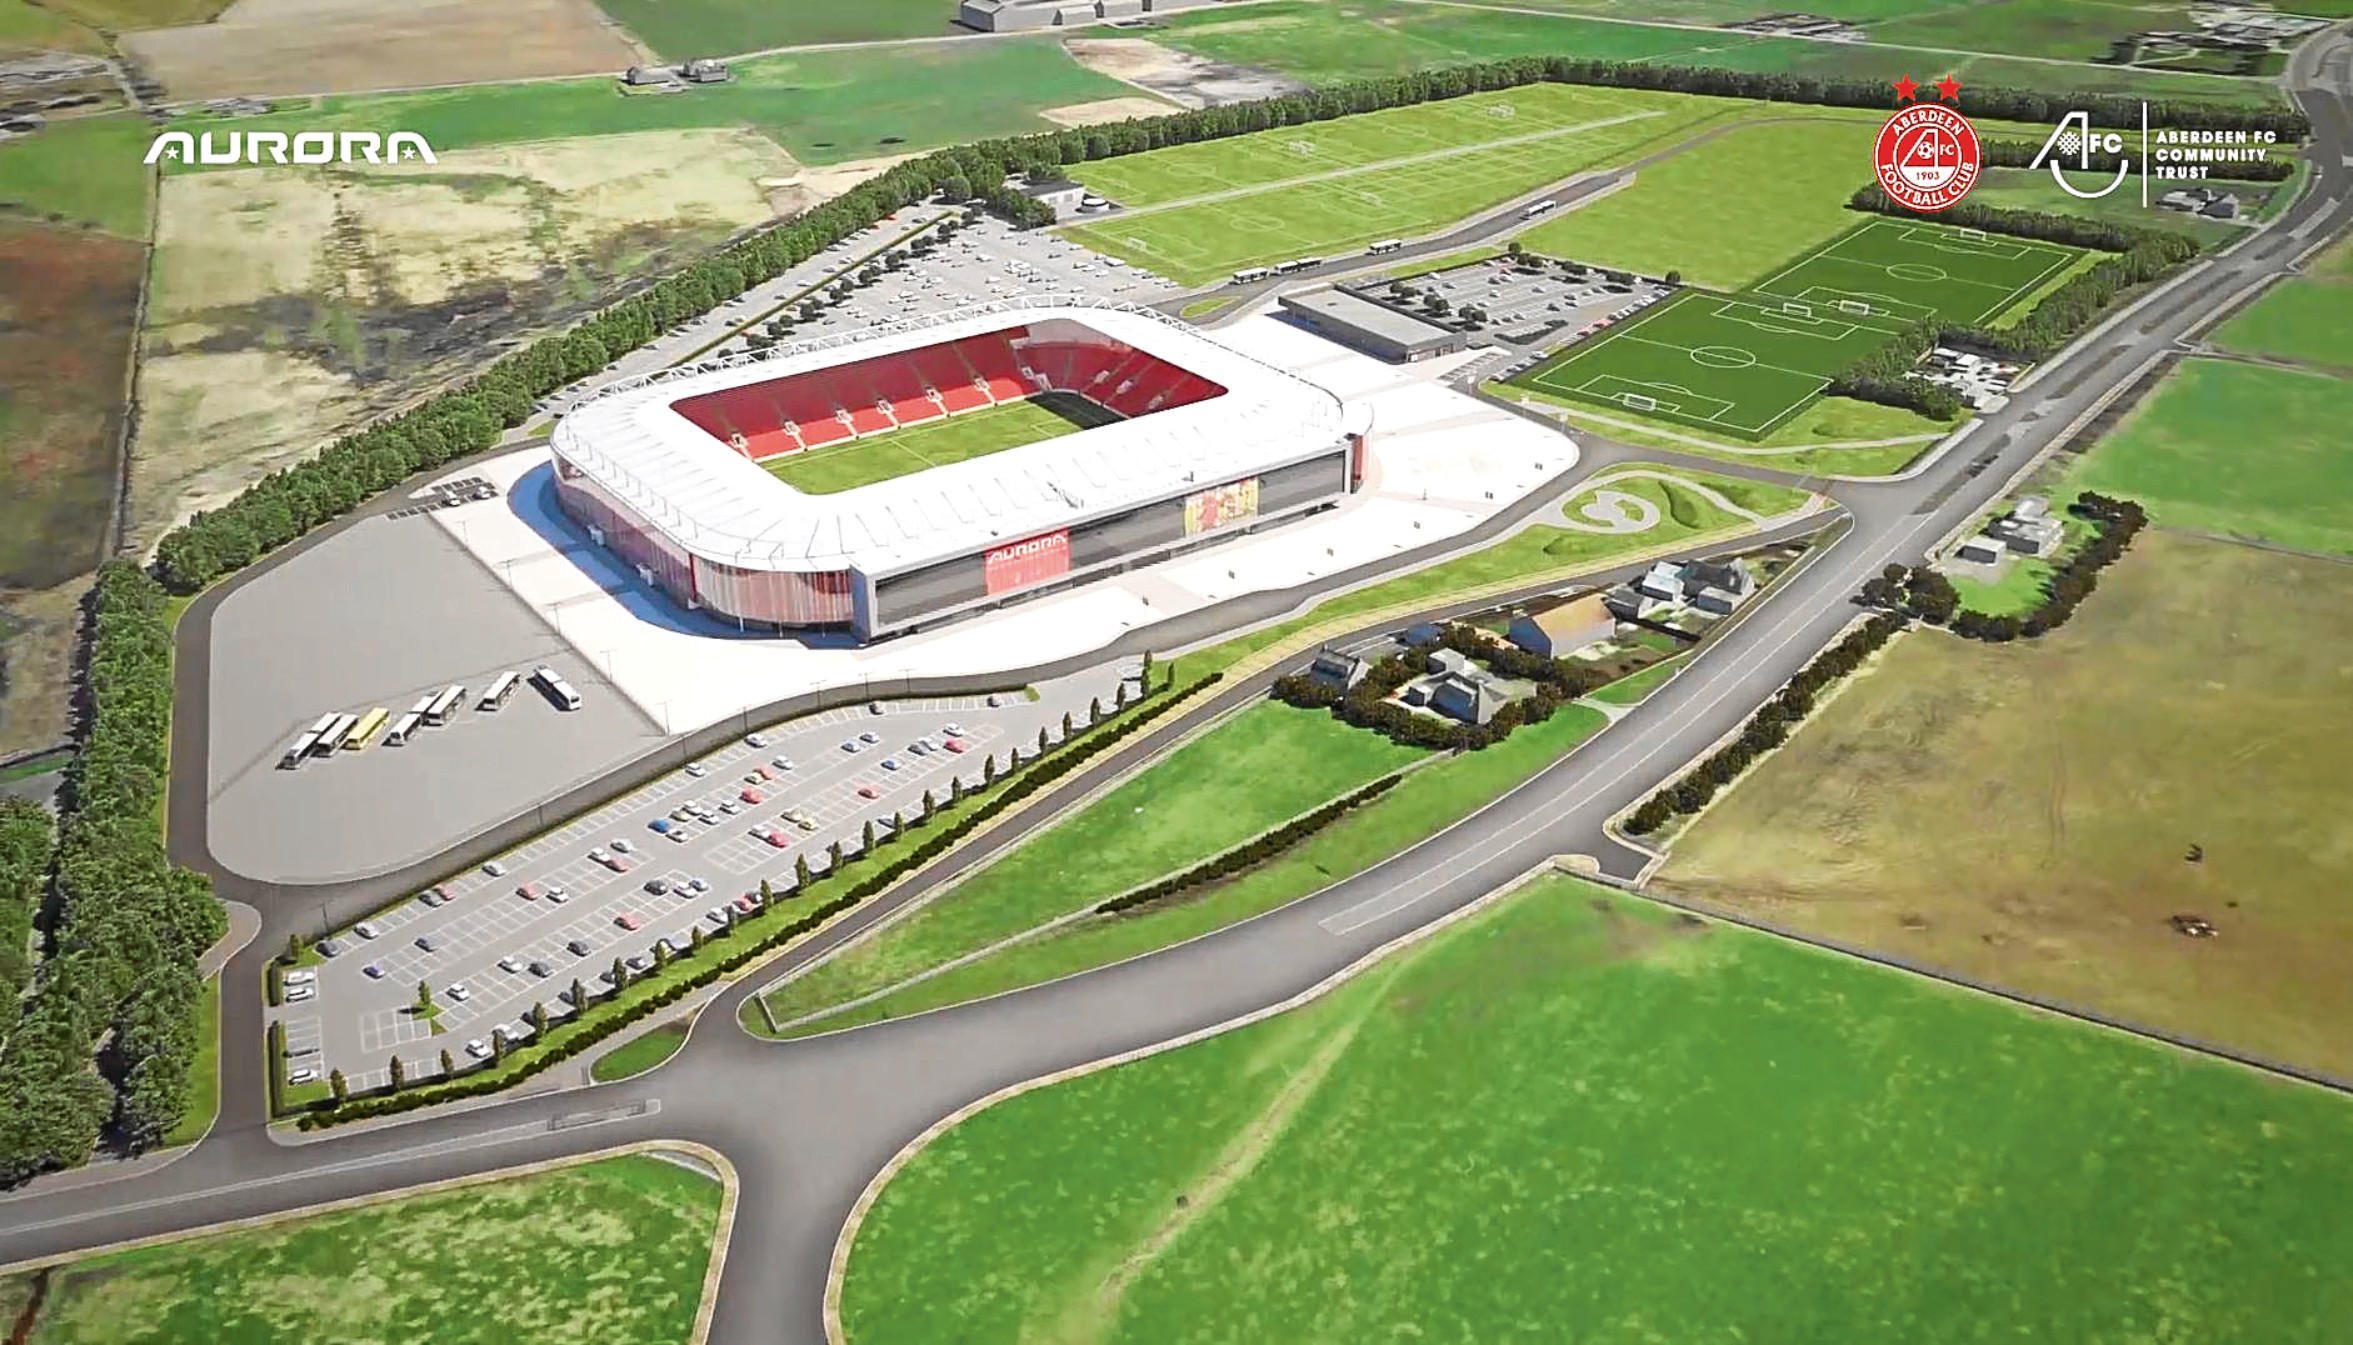 The proposed new Dons stadium at Kingsford